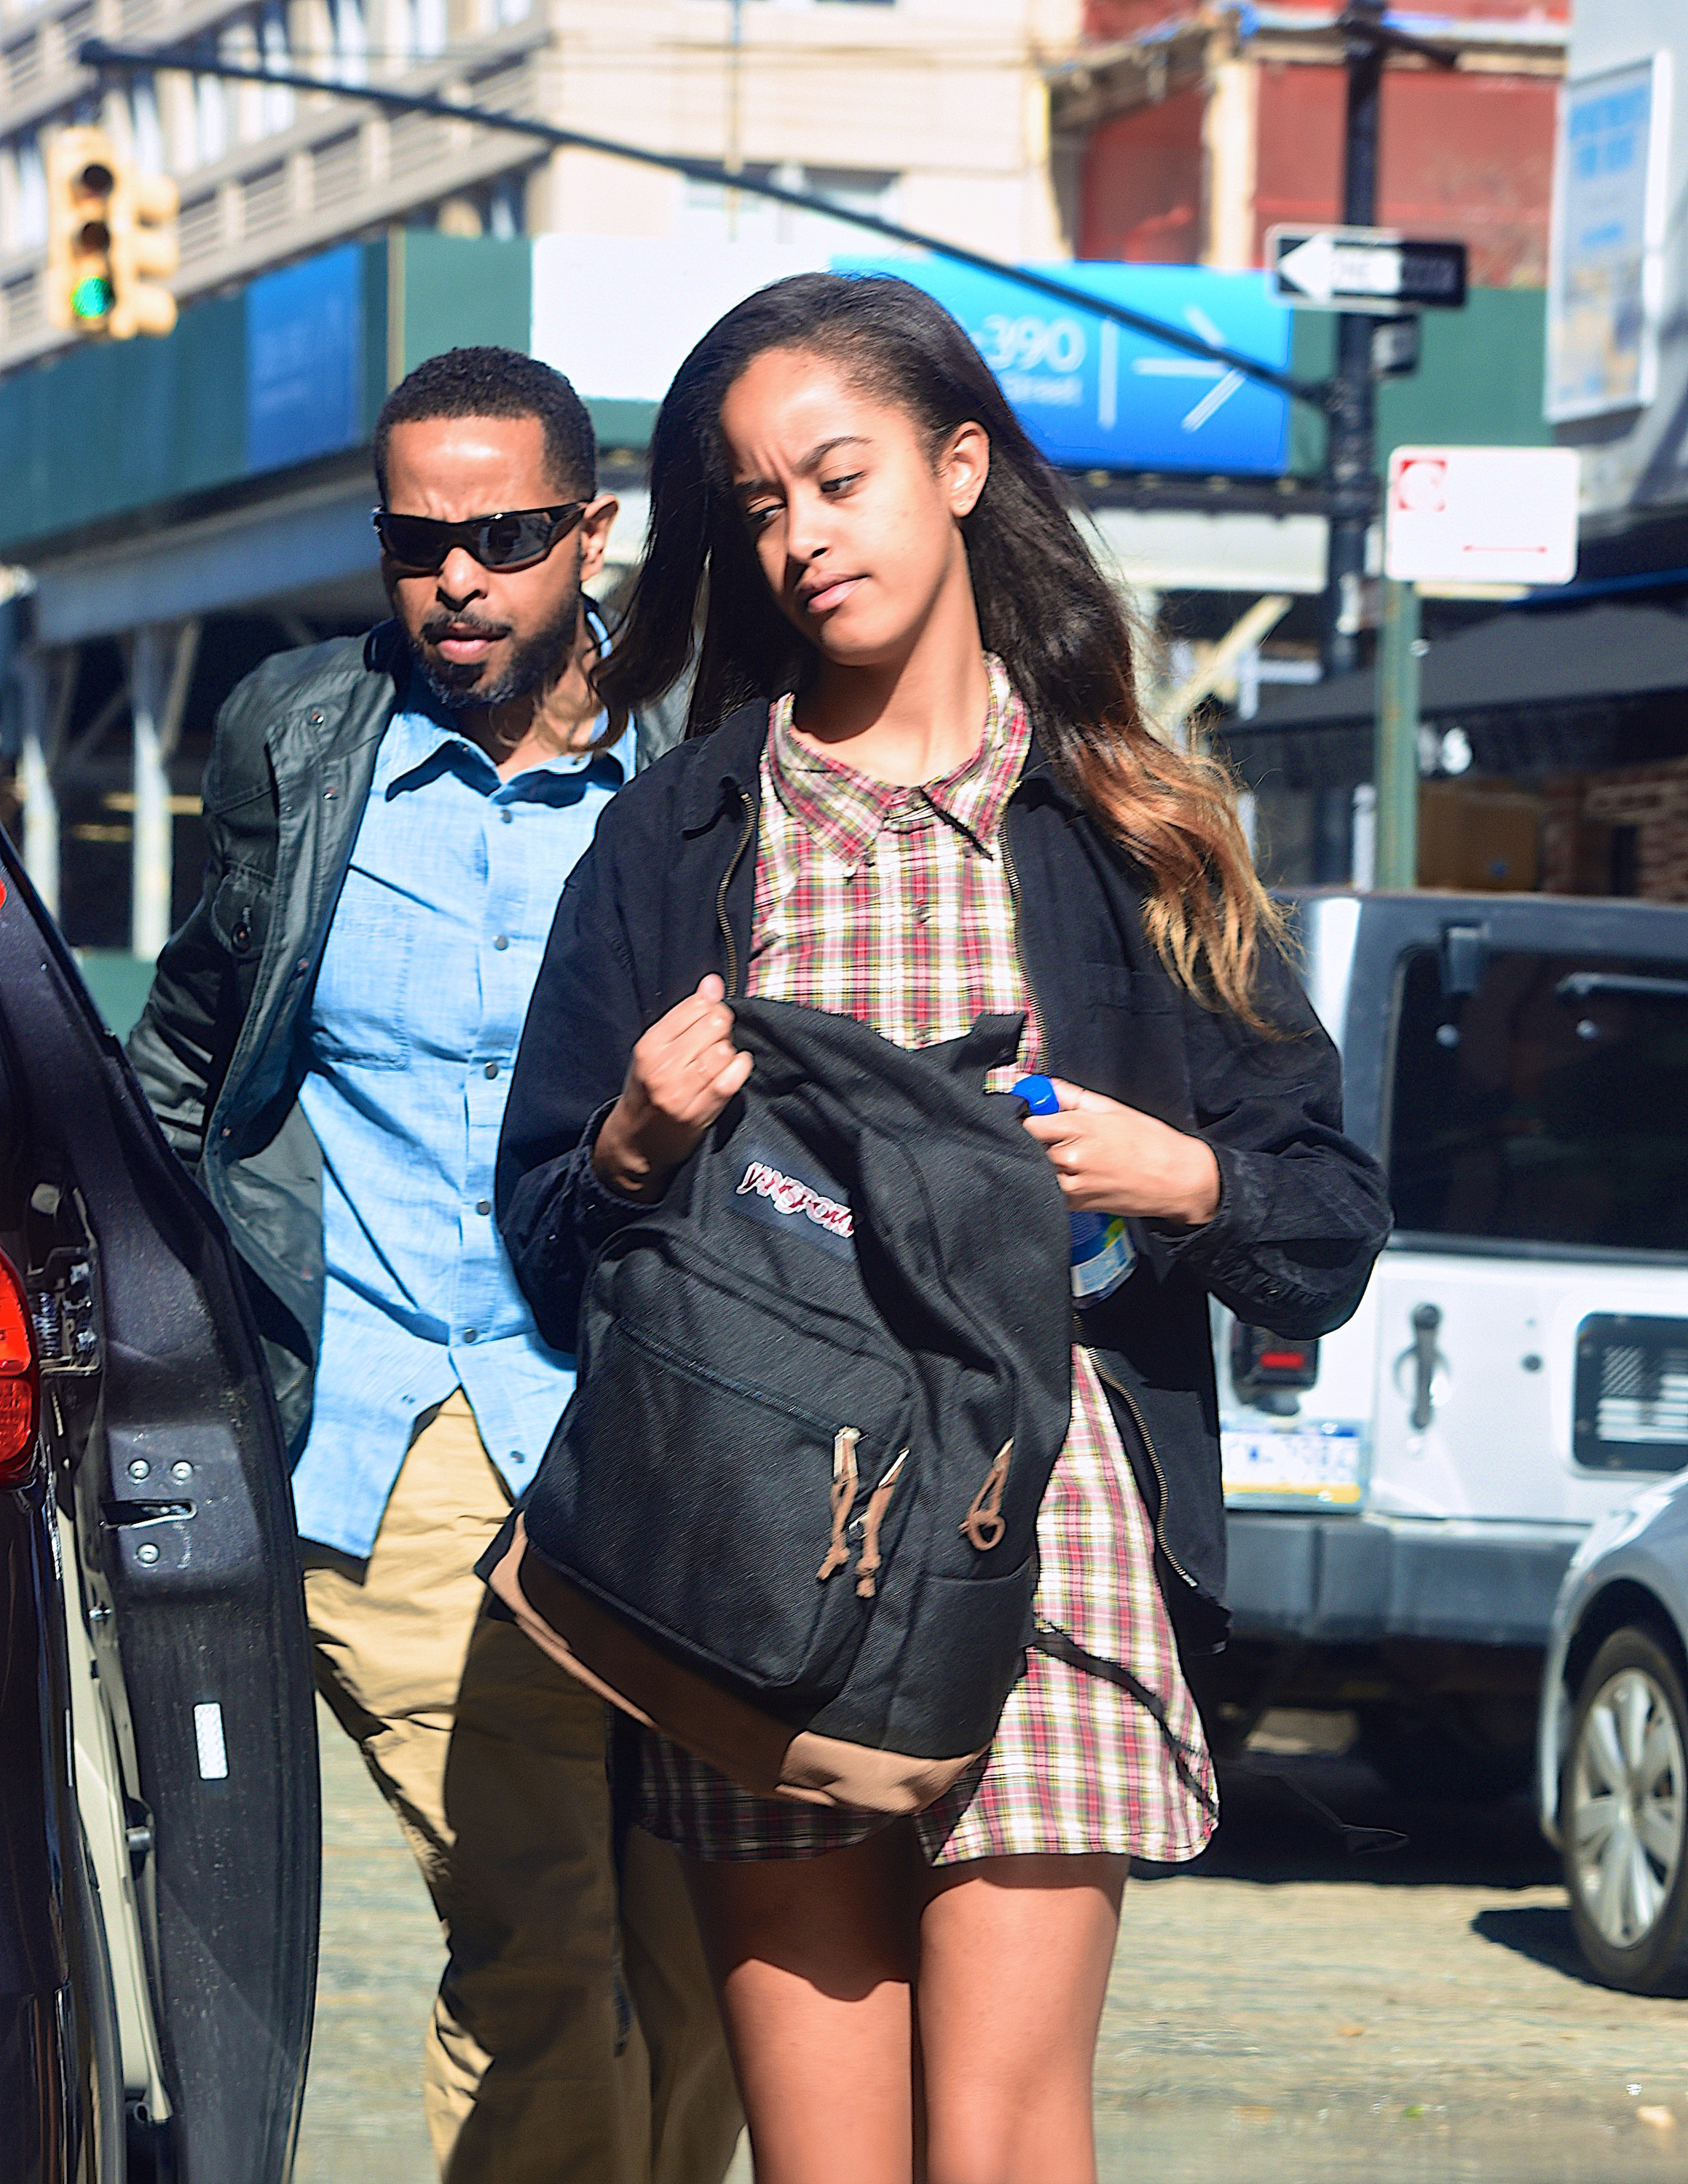 Malia Obama walks in Manhattan in 2017 wearing a flannel-print collared dress and jacket while carrying a backpack in her hands